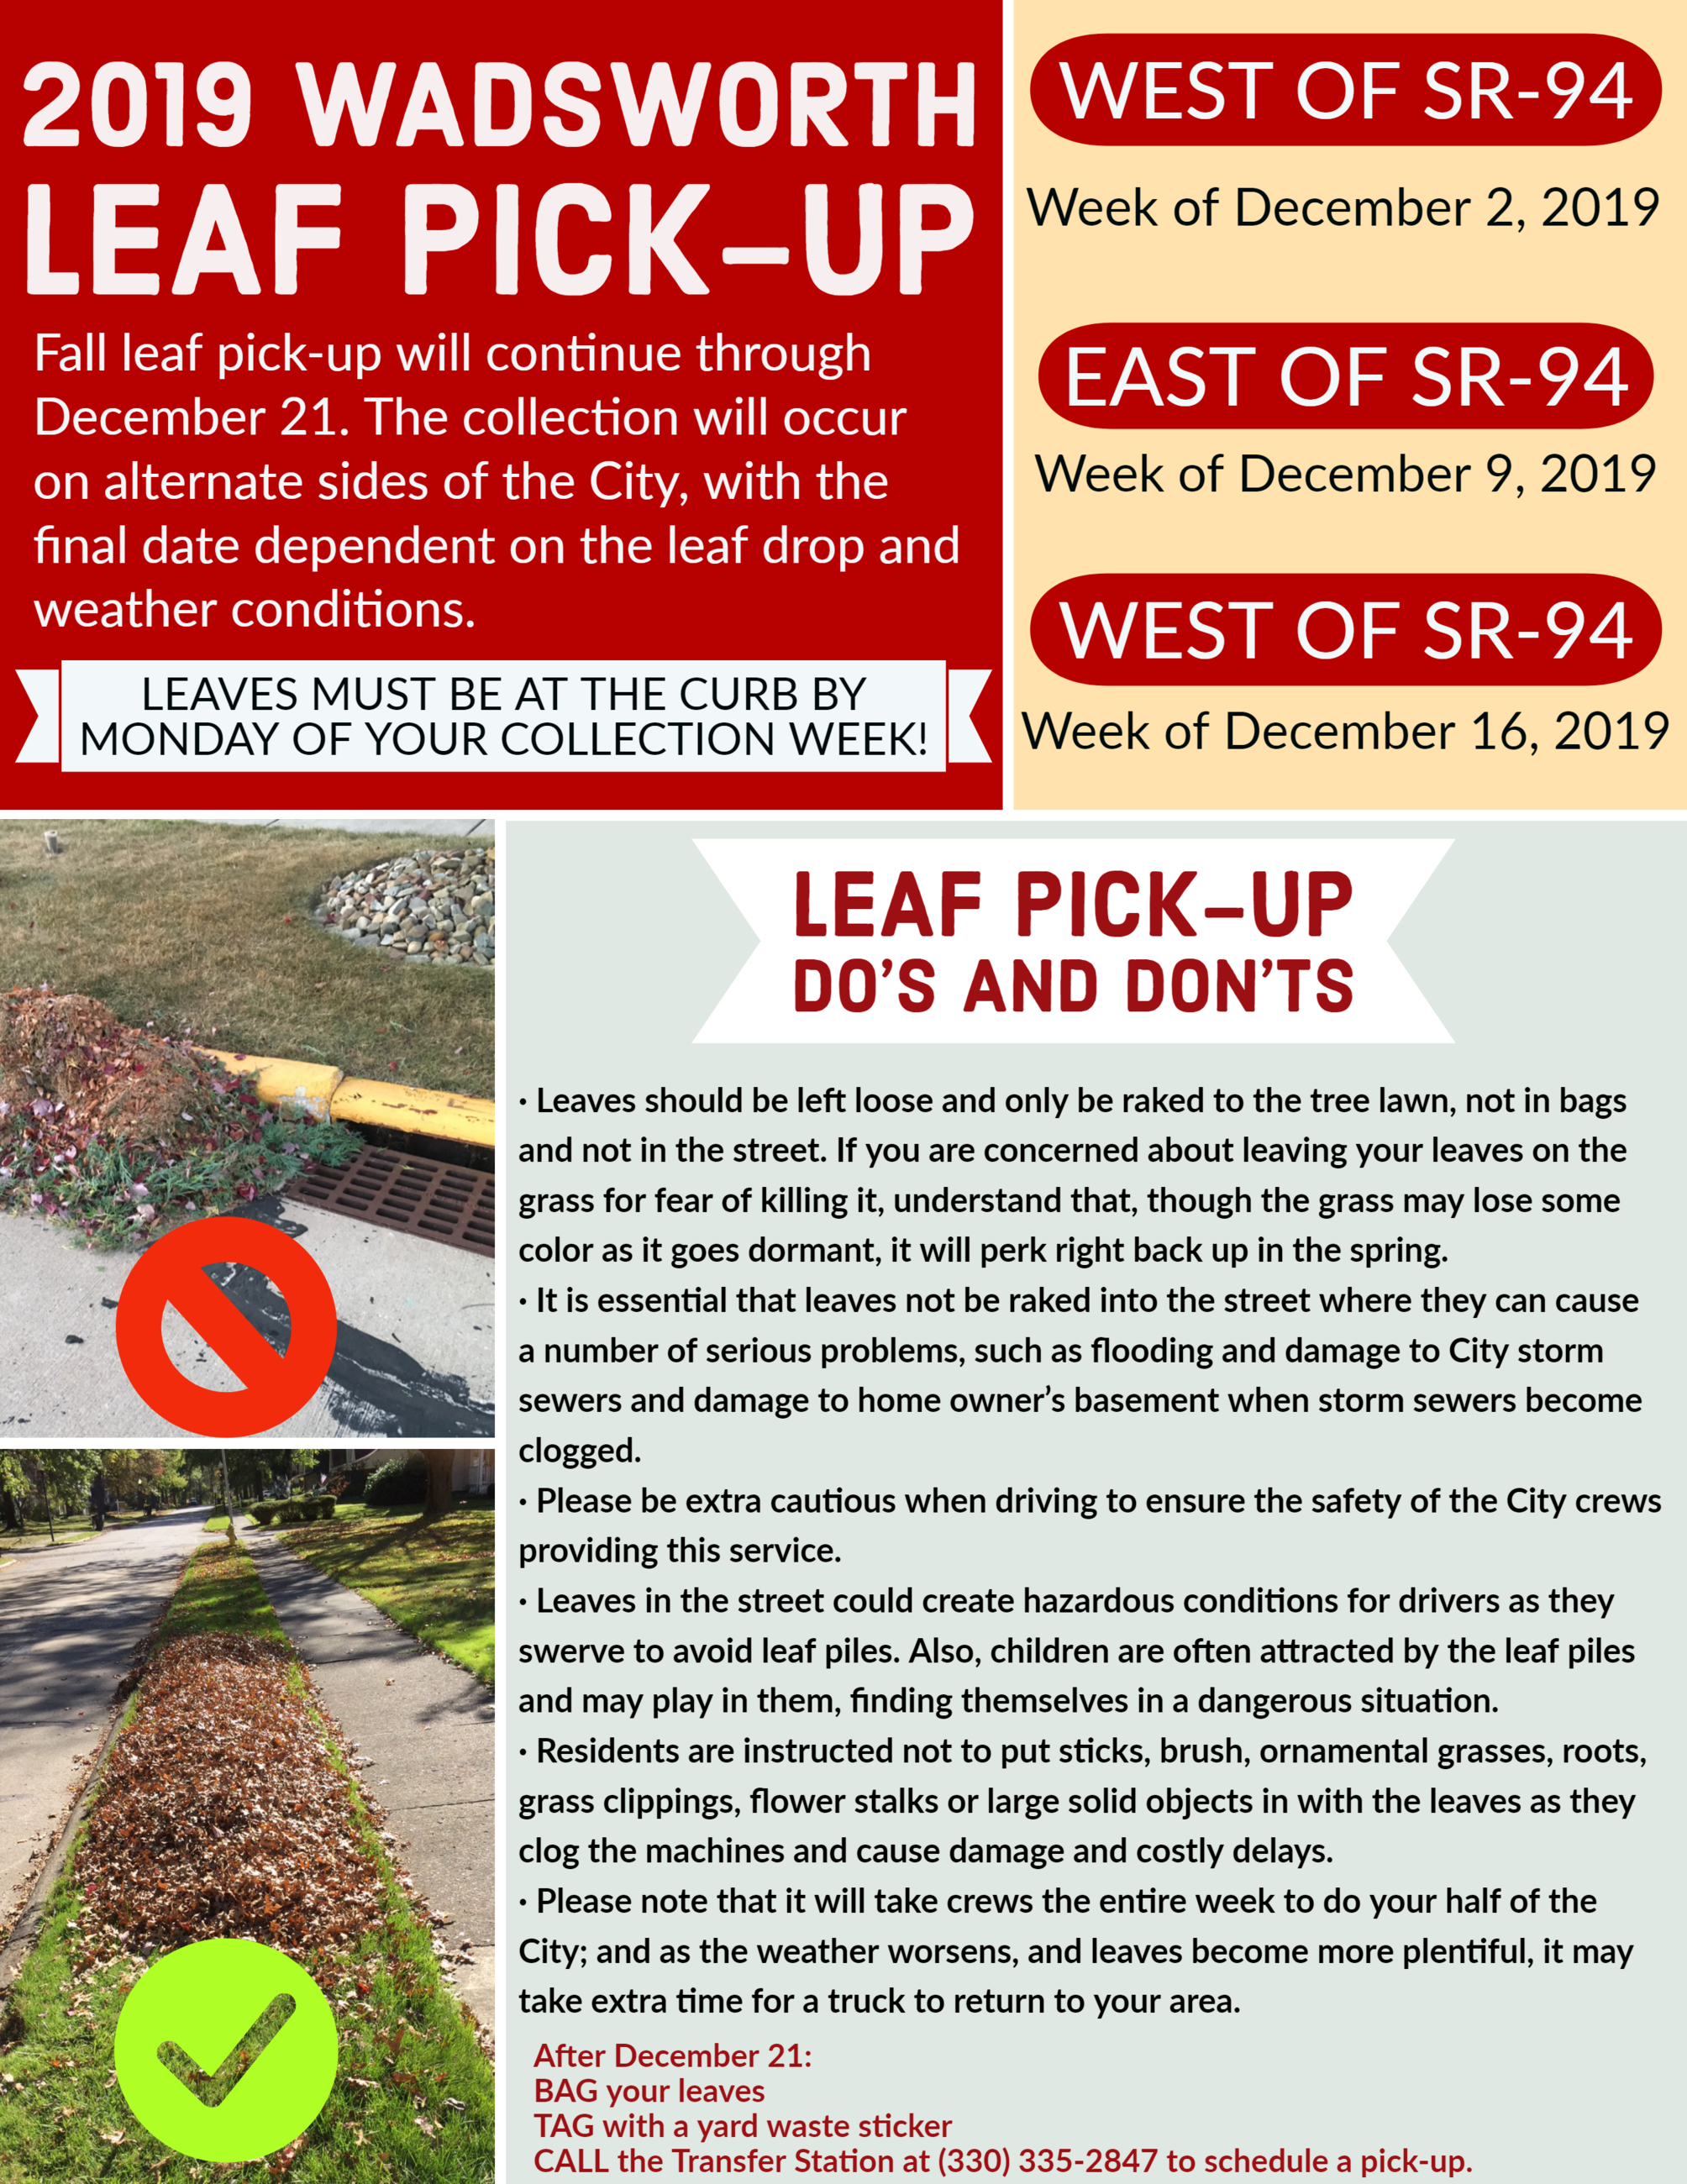 Leaf Pick-Up Dos and Donts Copy 2 (5)